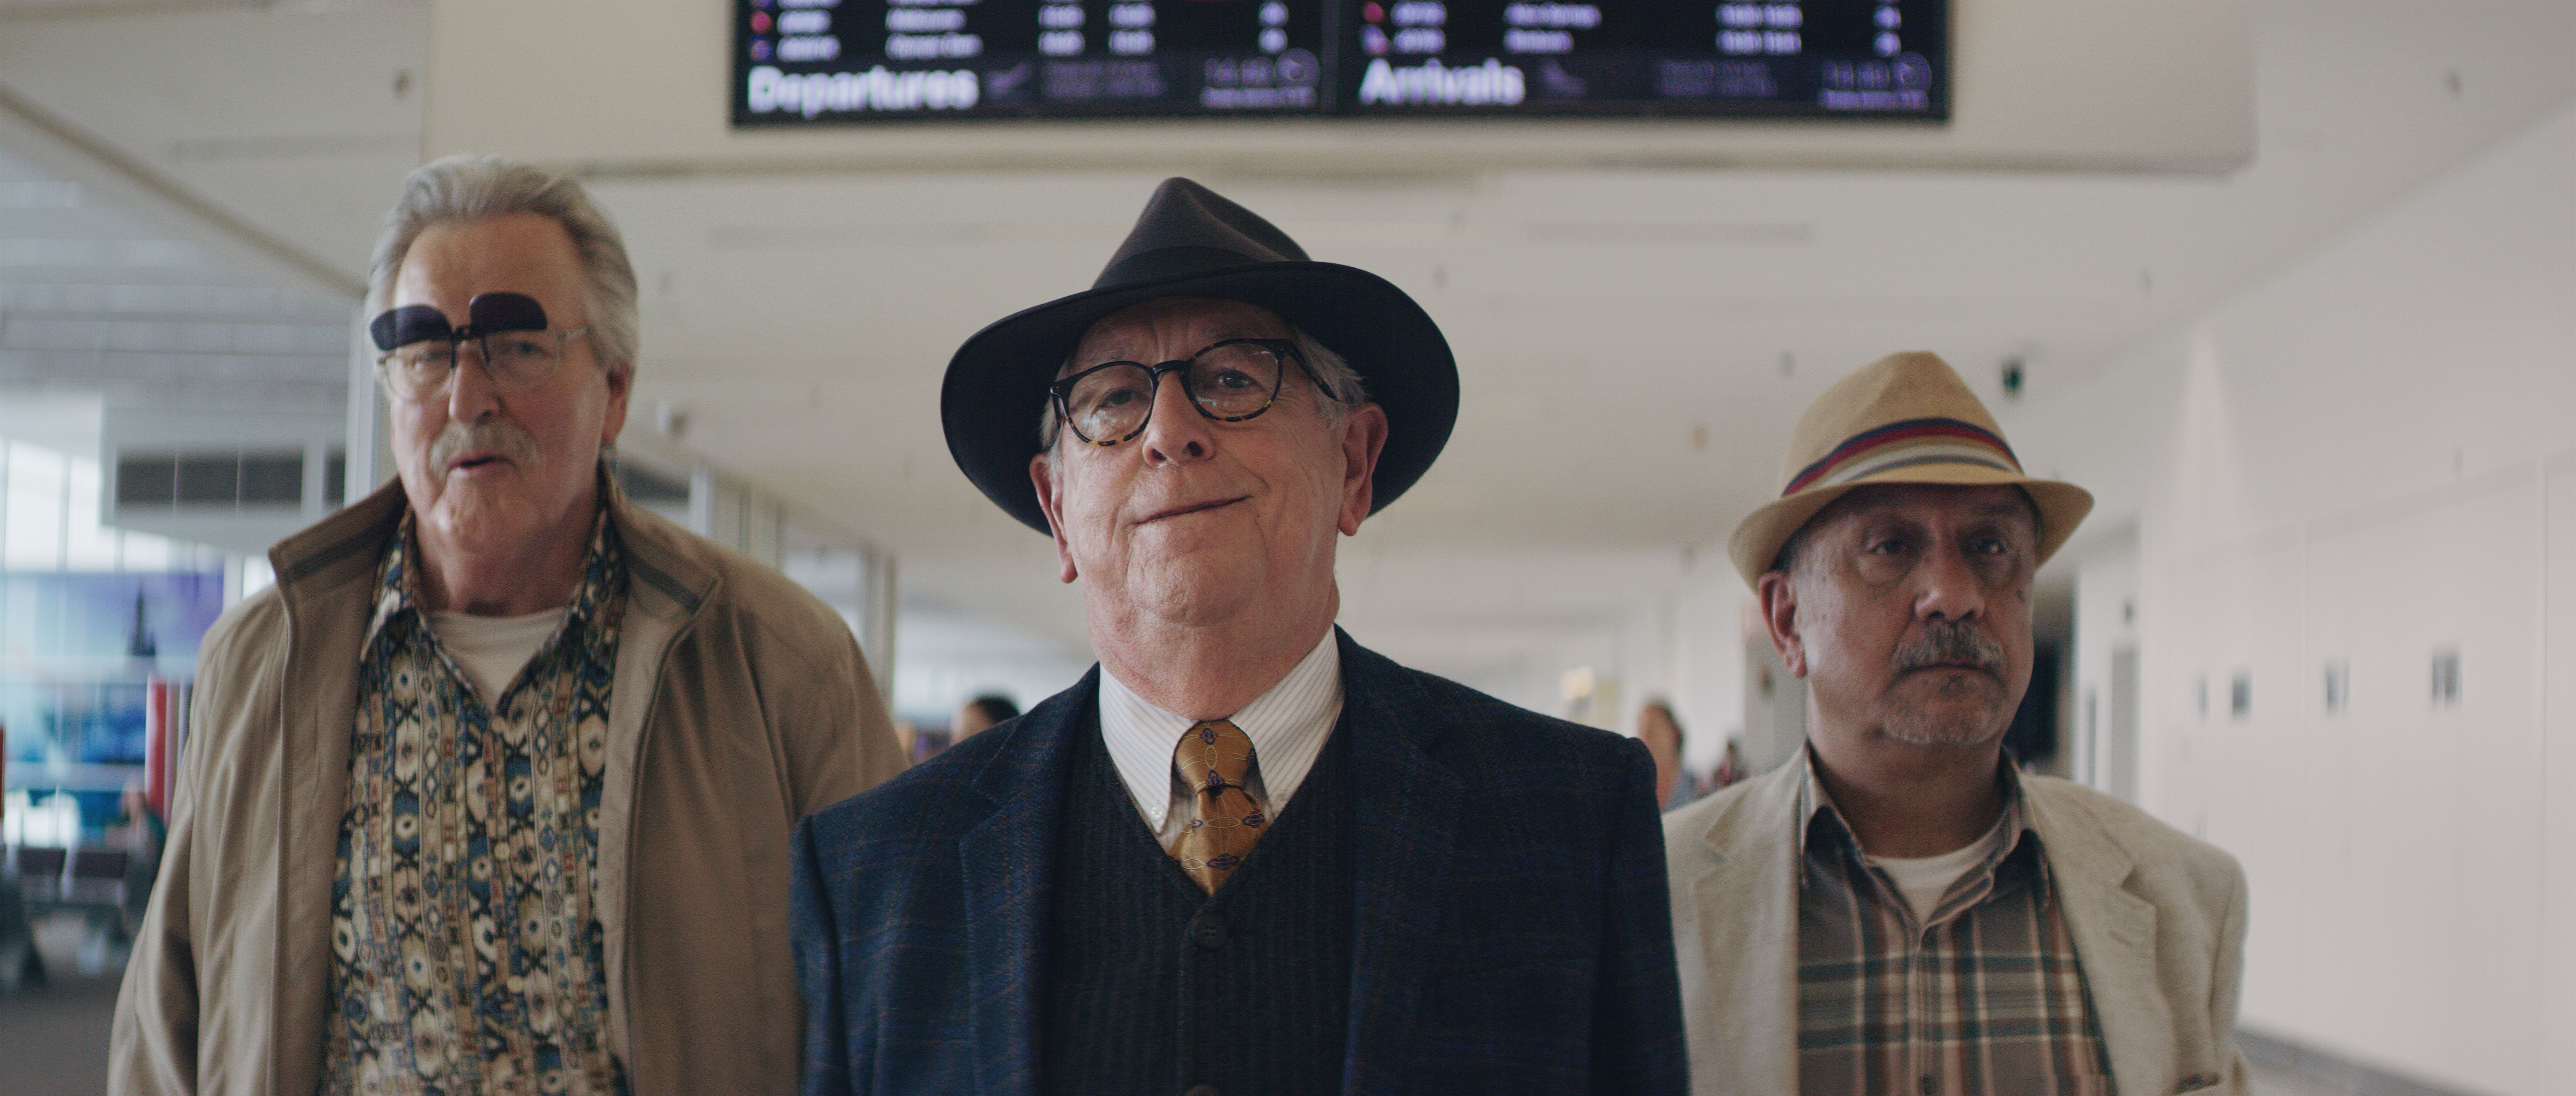 Old Mate returns to show his mates his city in SATC's follow-up spot via TBWA\Adelaide